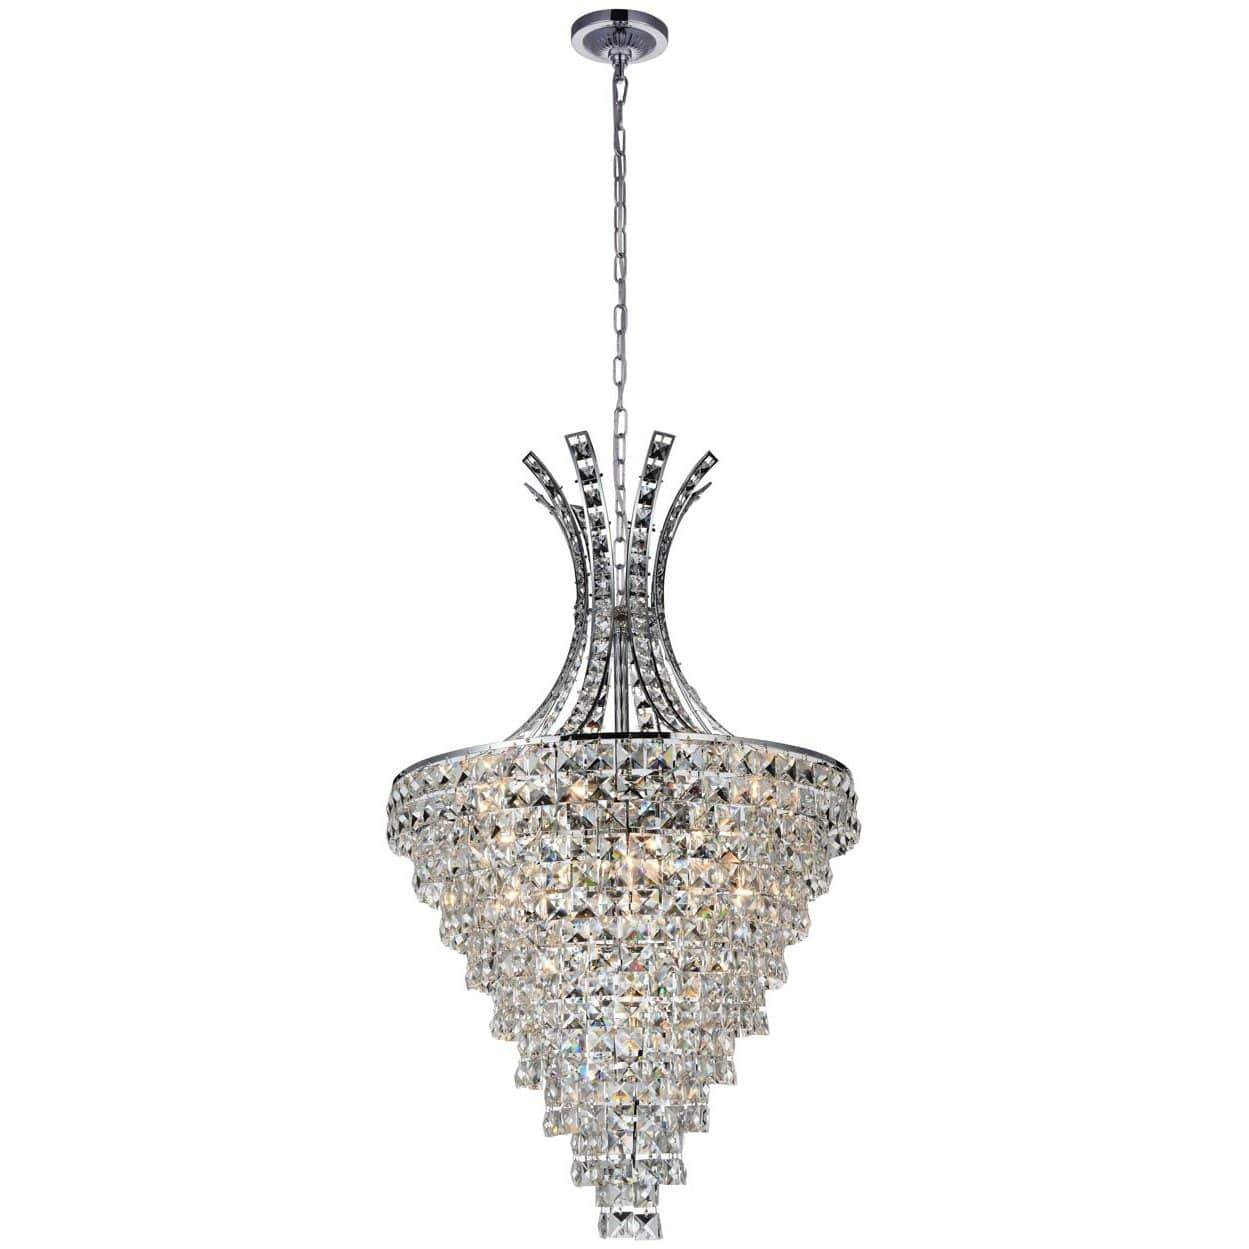 CWI Lighting Chandeliers Chrome / K9 Clear Chique 13 Light Chandelier with Chrome finish by CWI Lighting 5685P24C